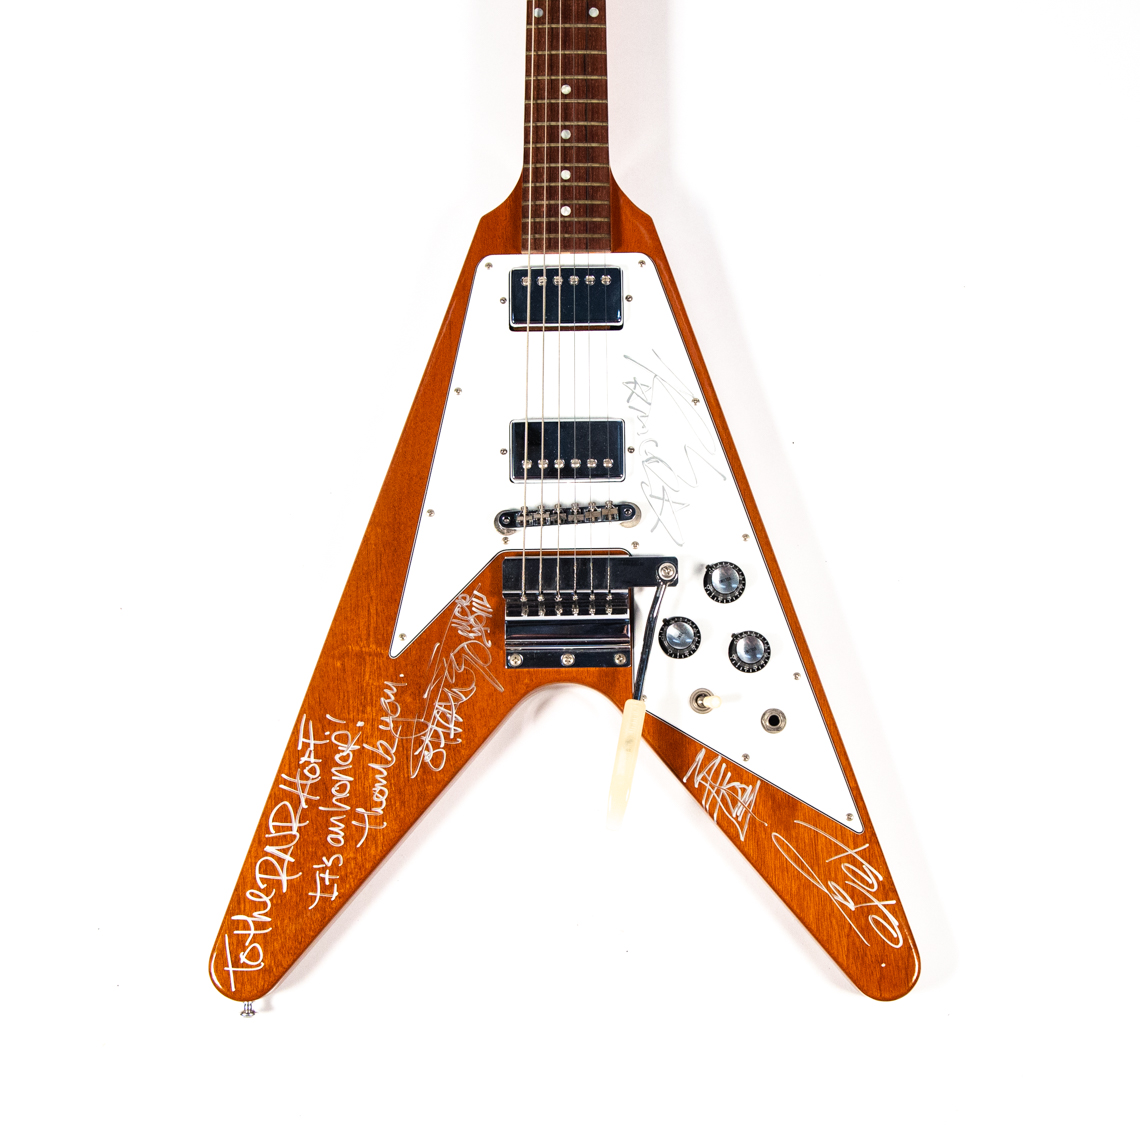 Gibson '67 Flying V autographed by My Chemical Romance